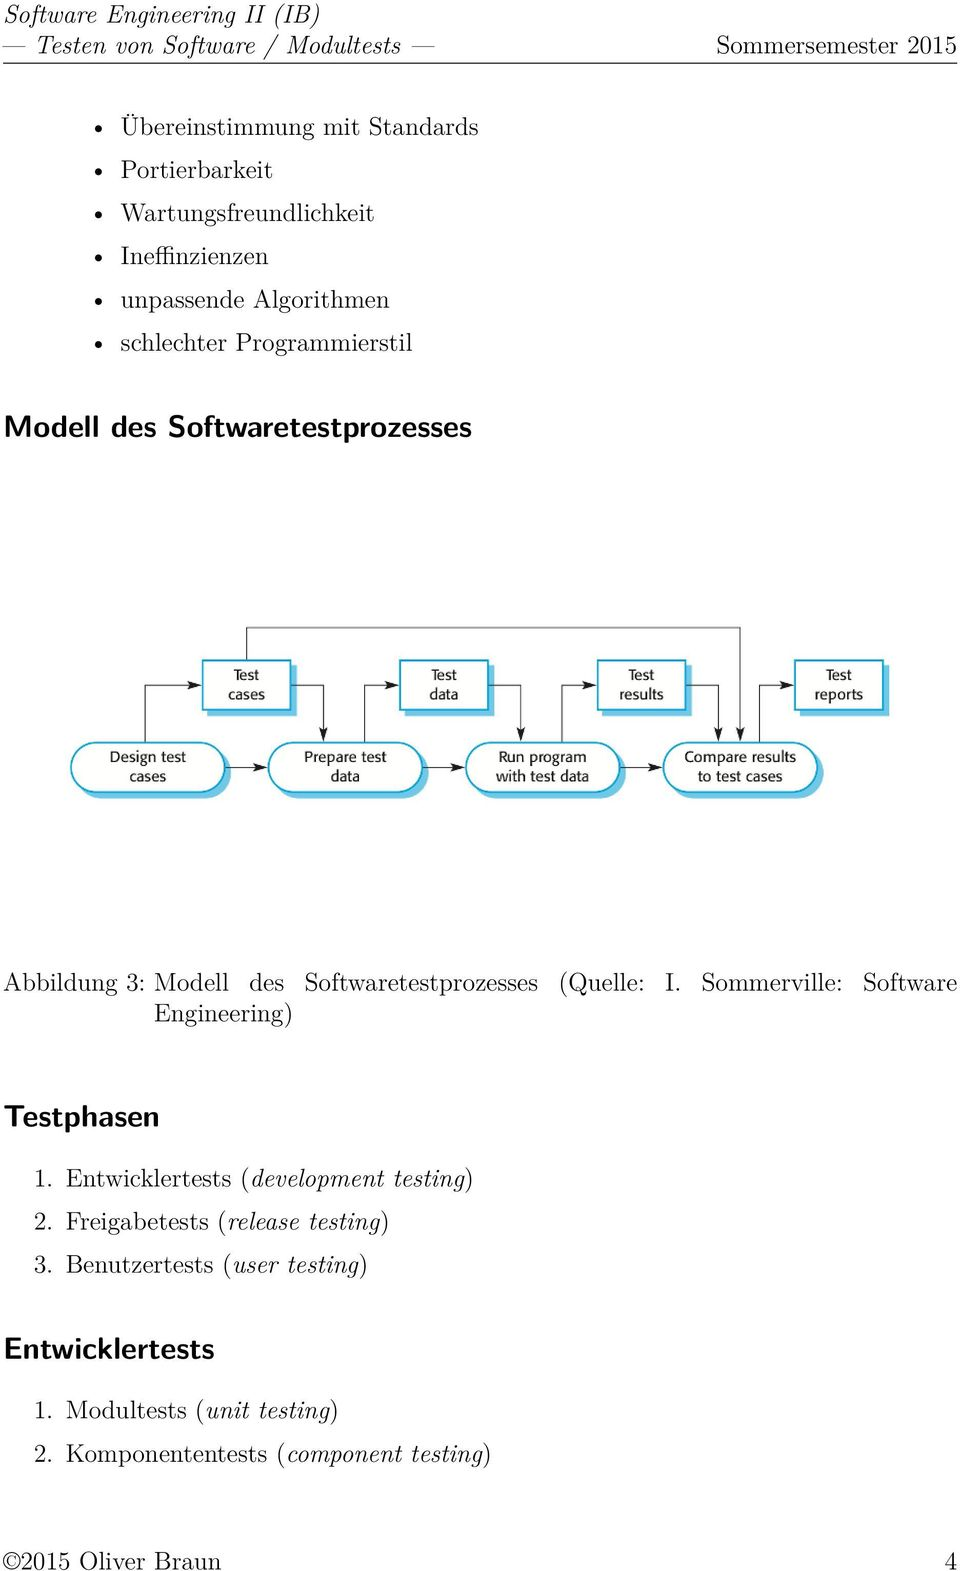 Sommerville: Software Engineering) Testphasen 1. Entwicklertests (development testing) 2.